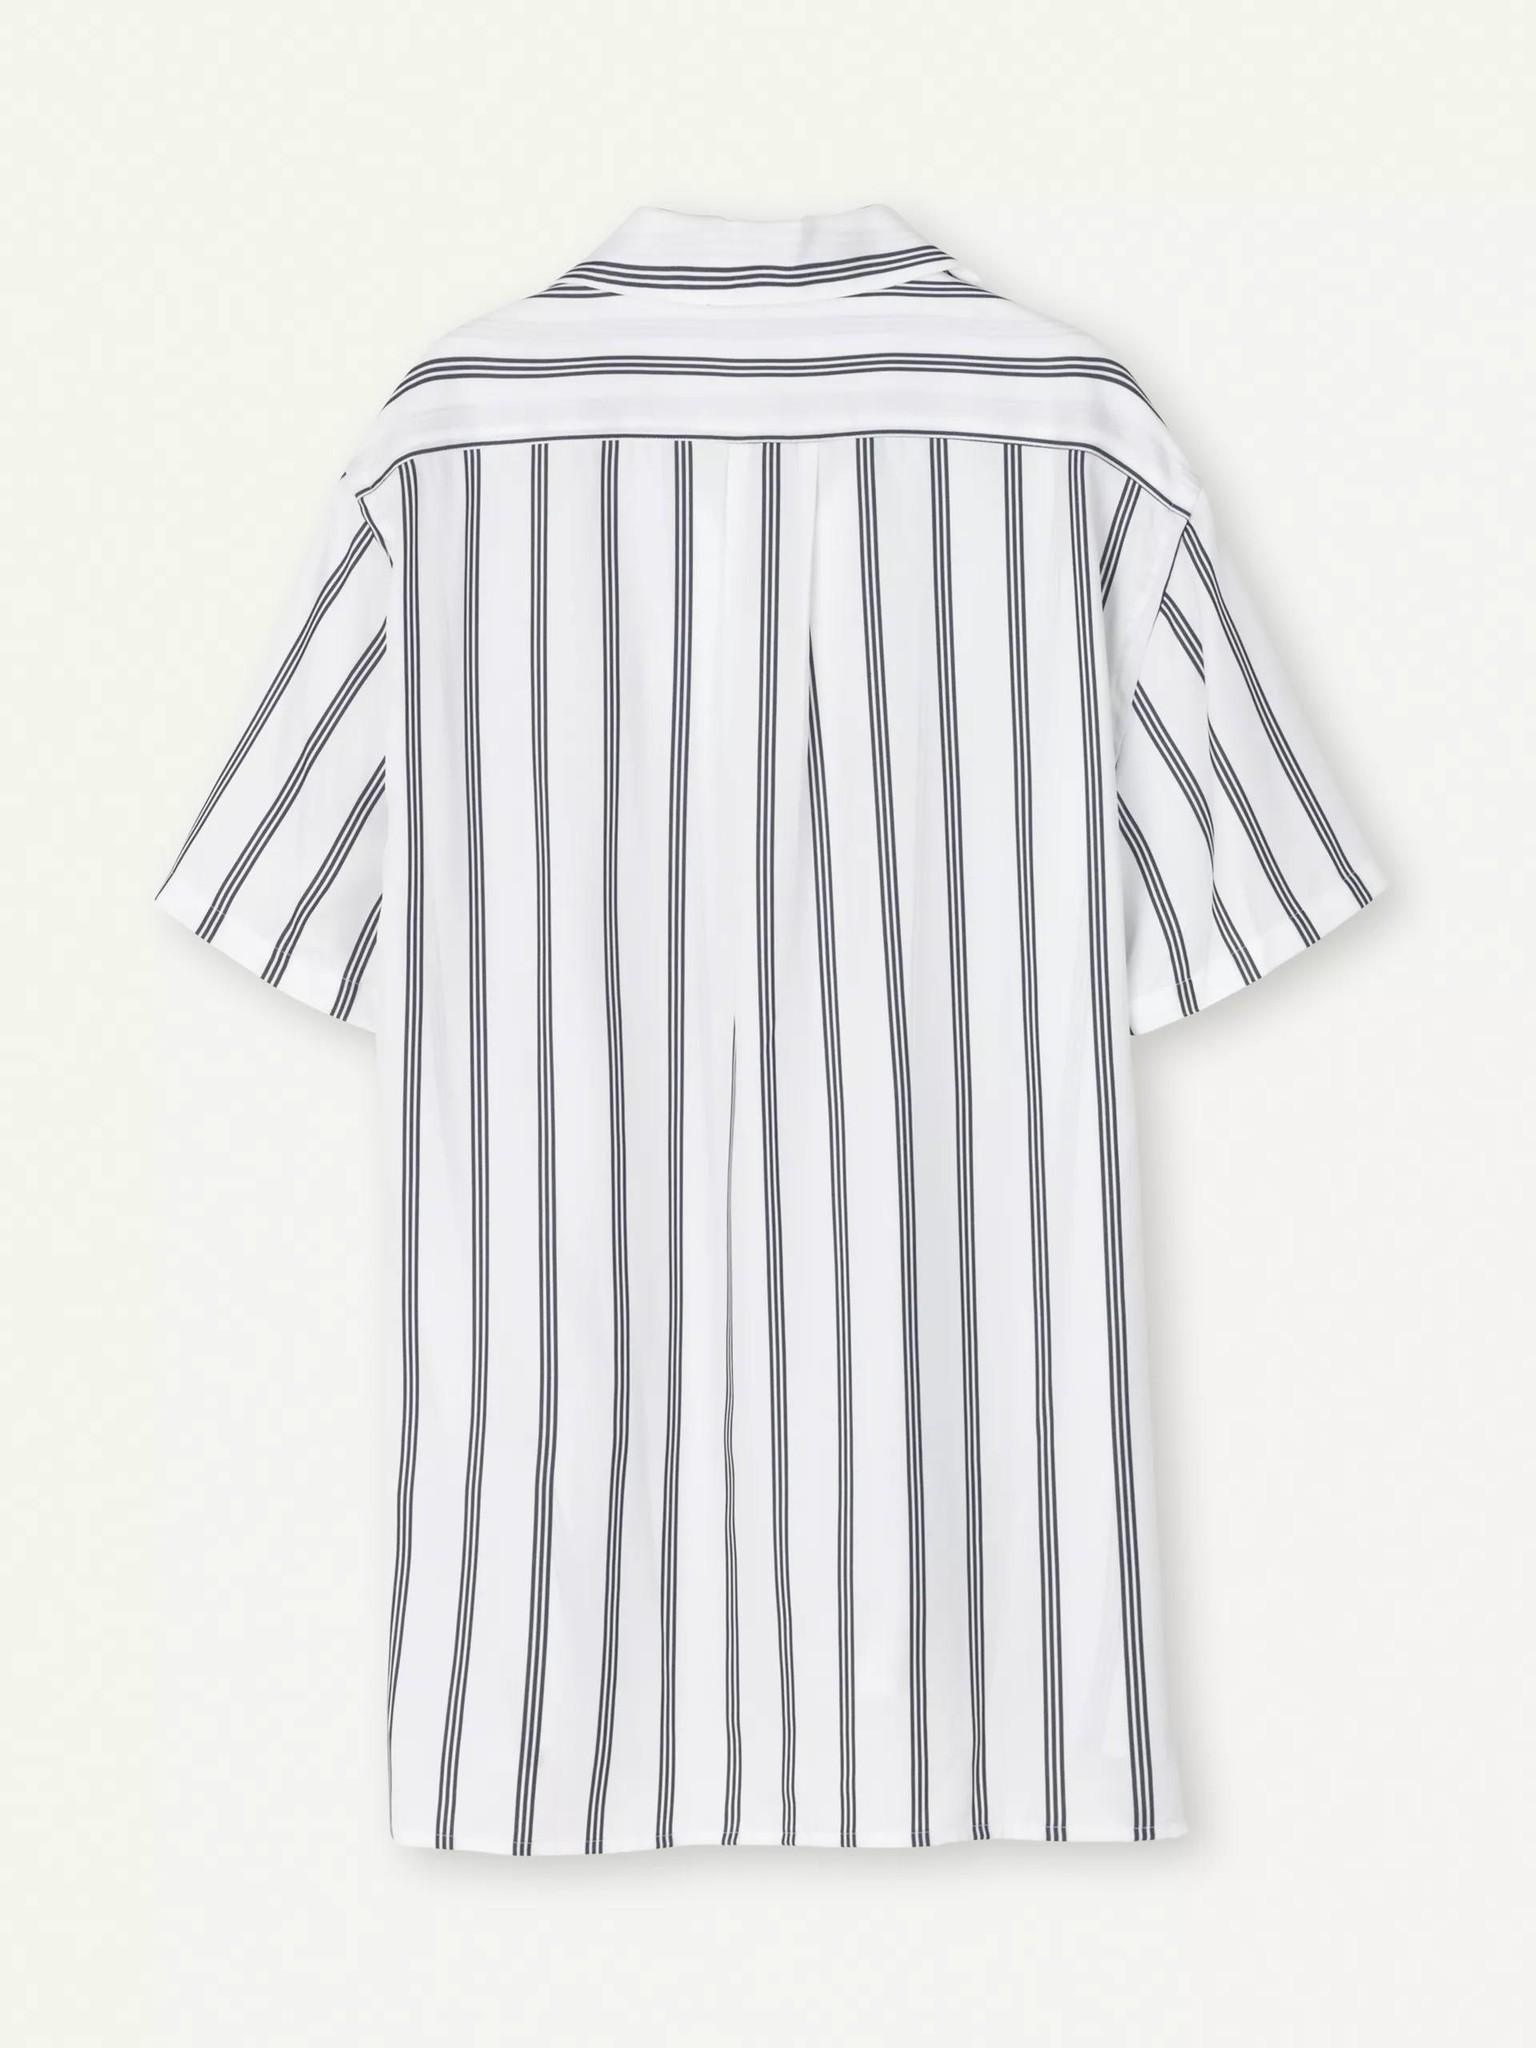 Cave Short Sleeve Shirt White Navy Stripe-2